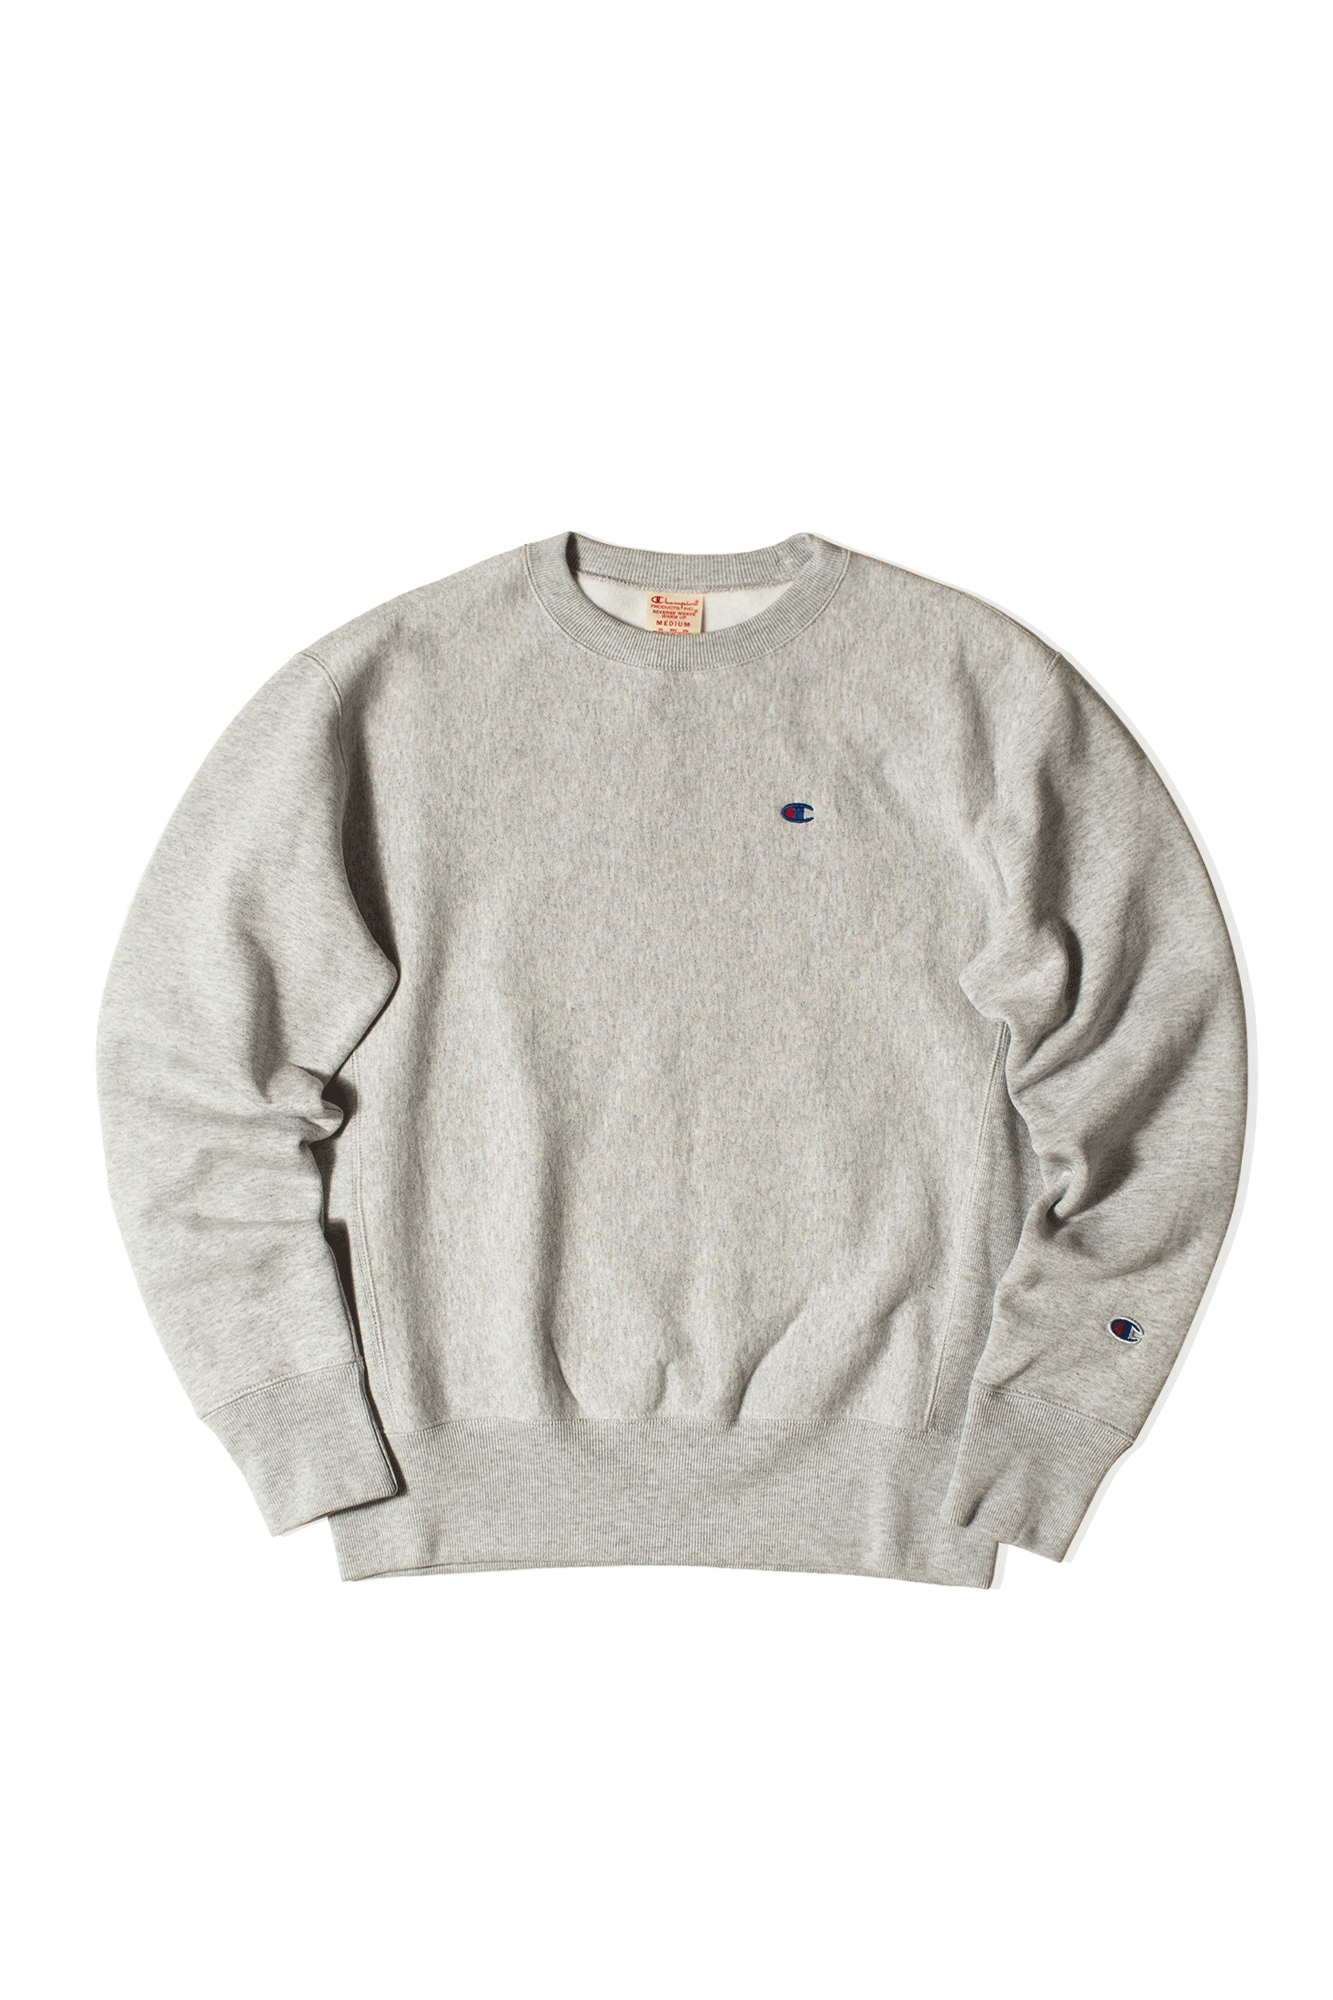 Champion Felpe girocollo Crewneck Sweatshirt Grigio 214676#000#EM004#M - One Block Down